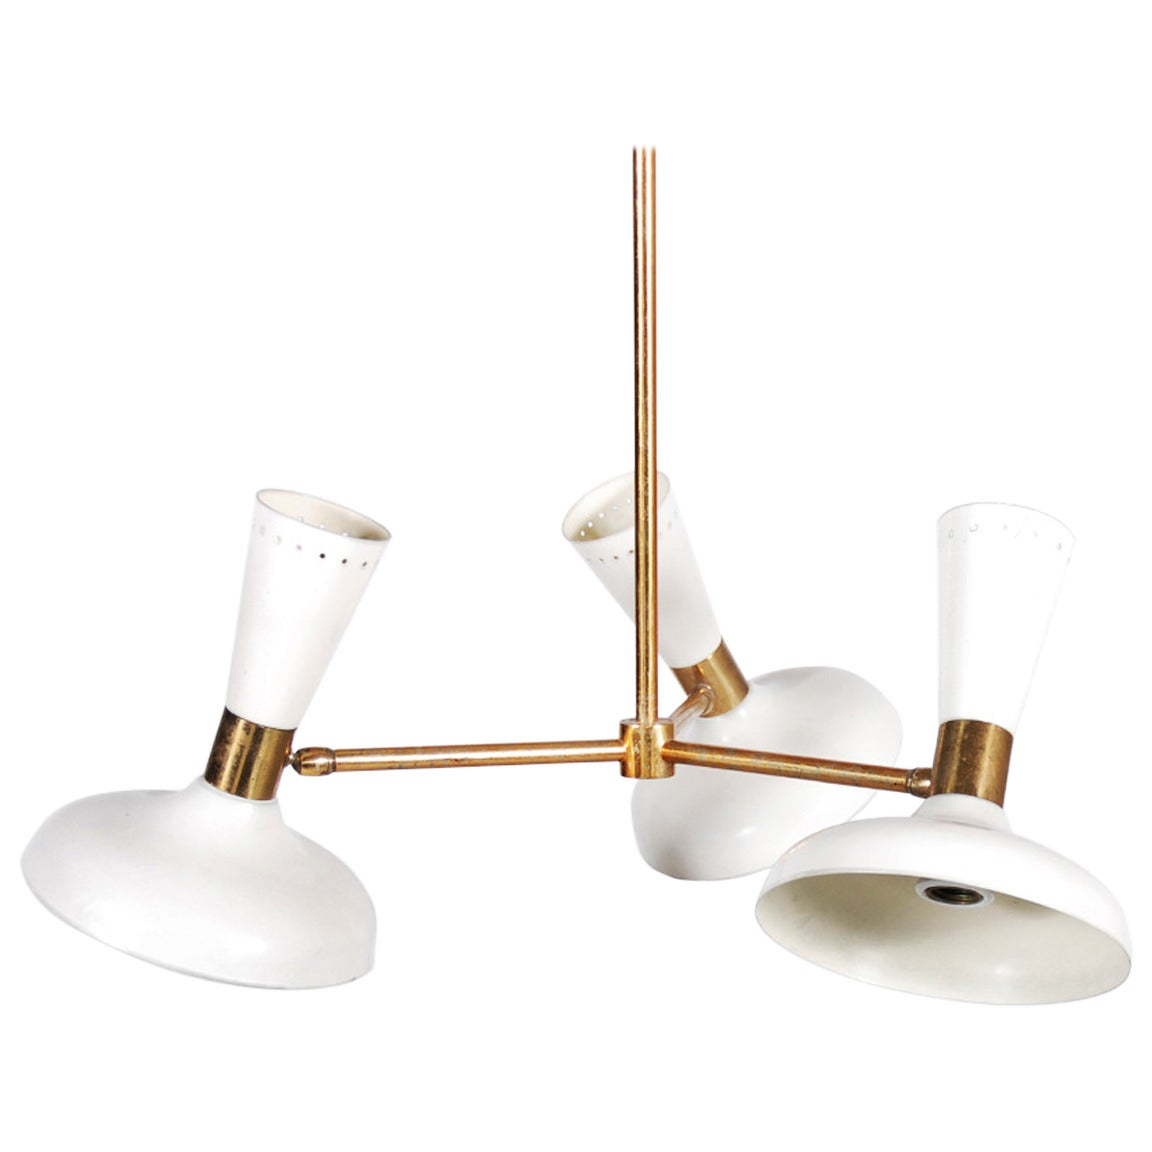 Stilnovo Ceiling Lamp with Three White Lacquered Shades, 1950 For Sale